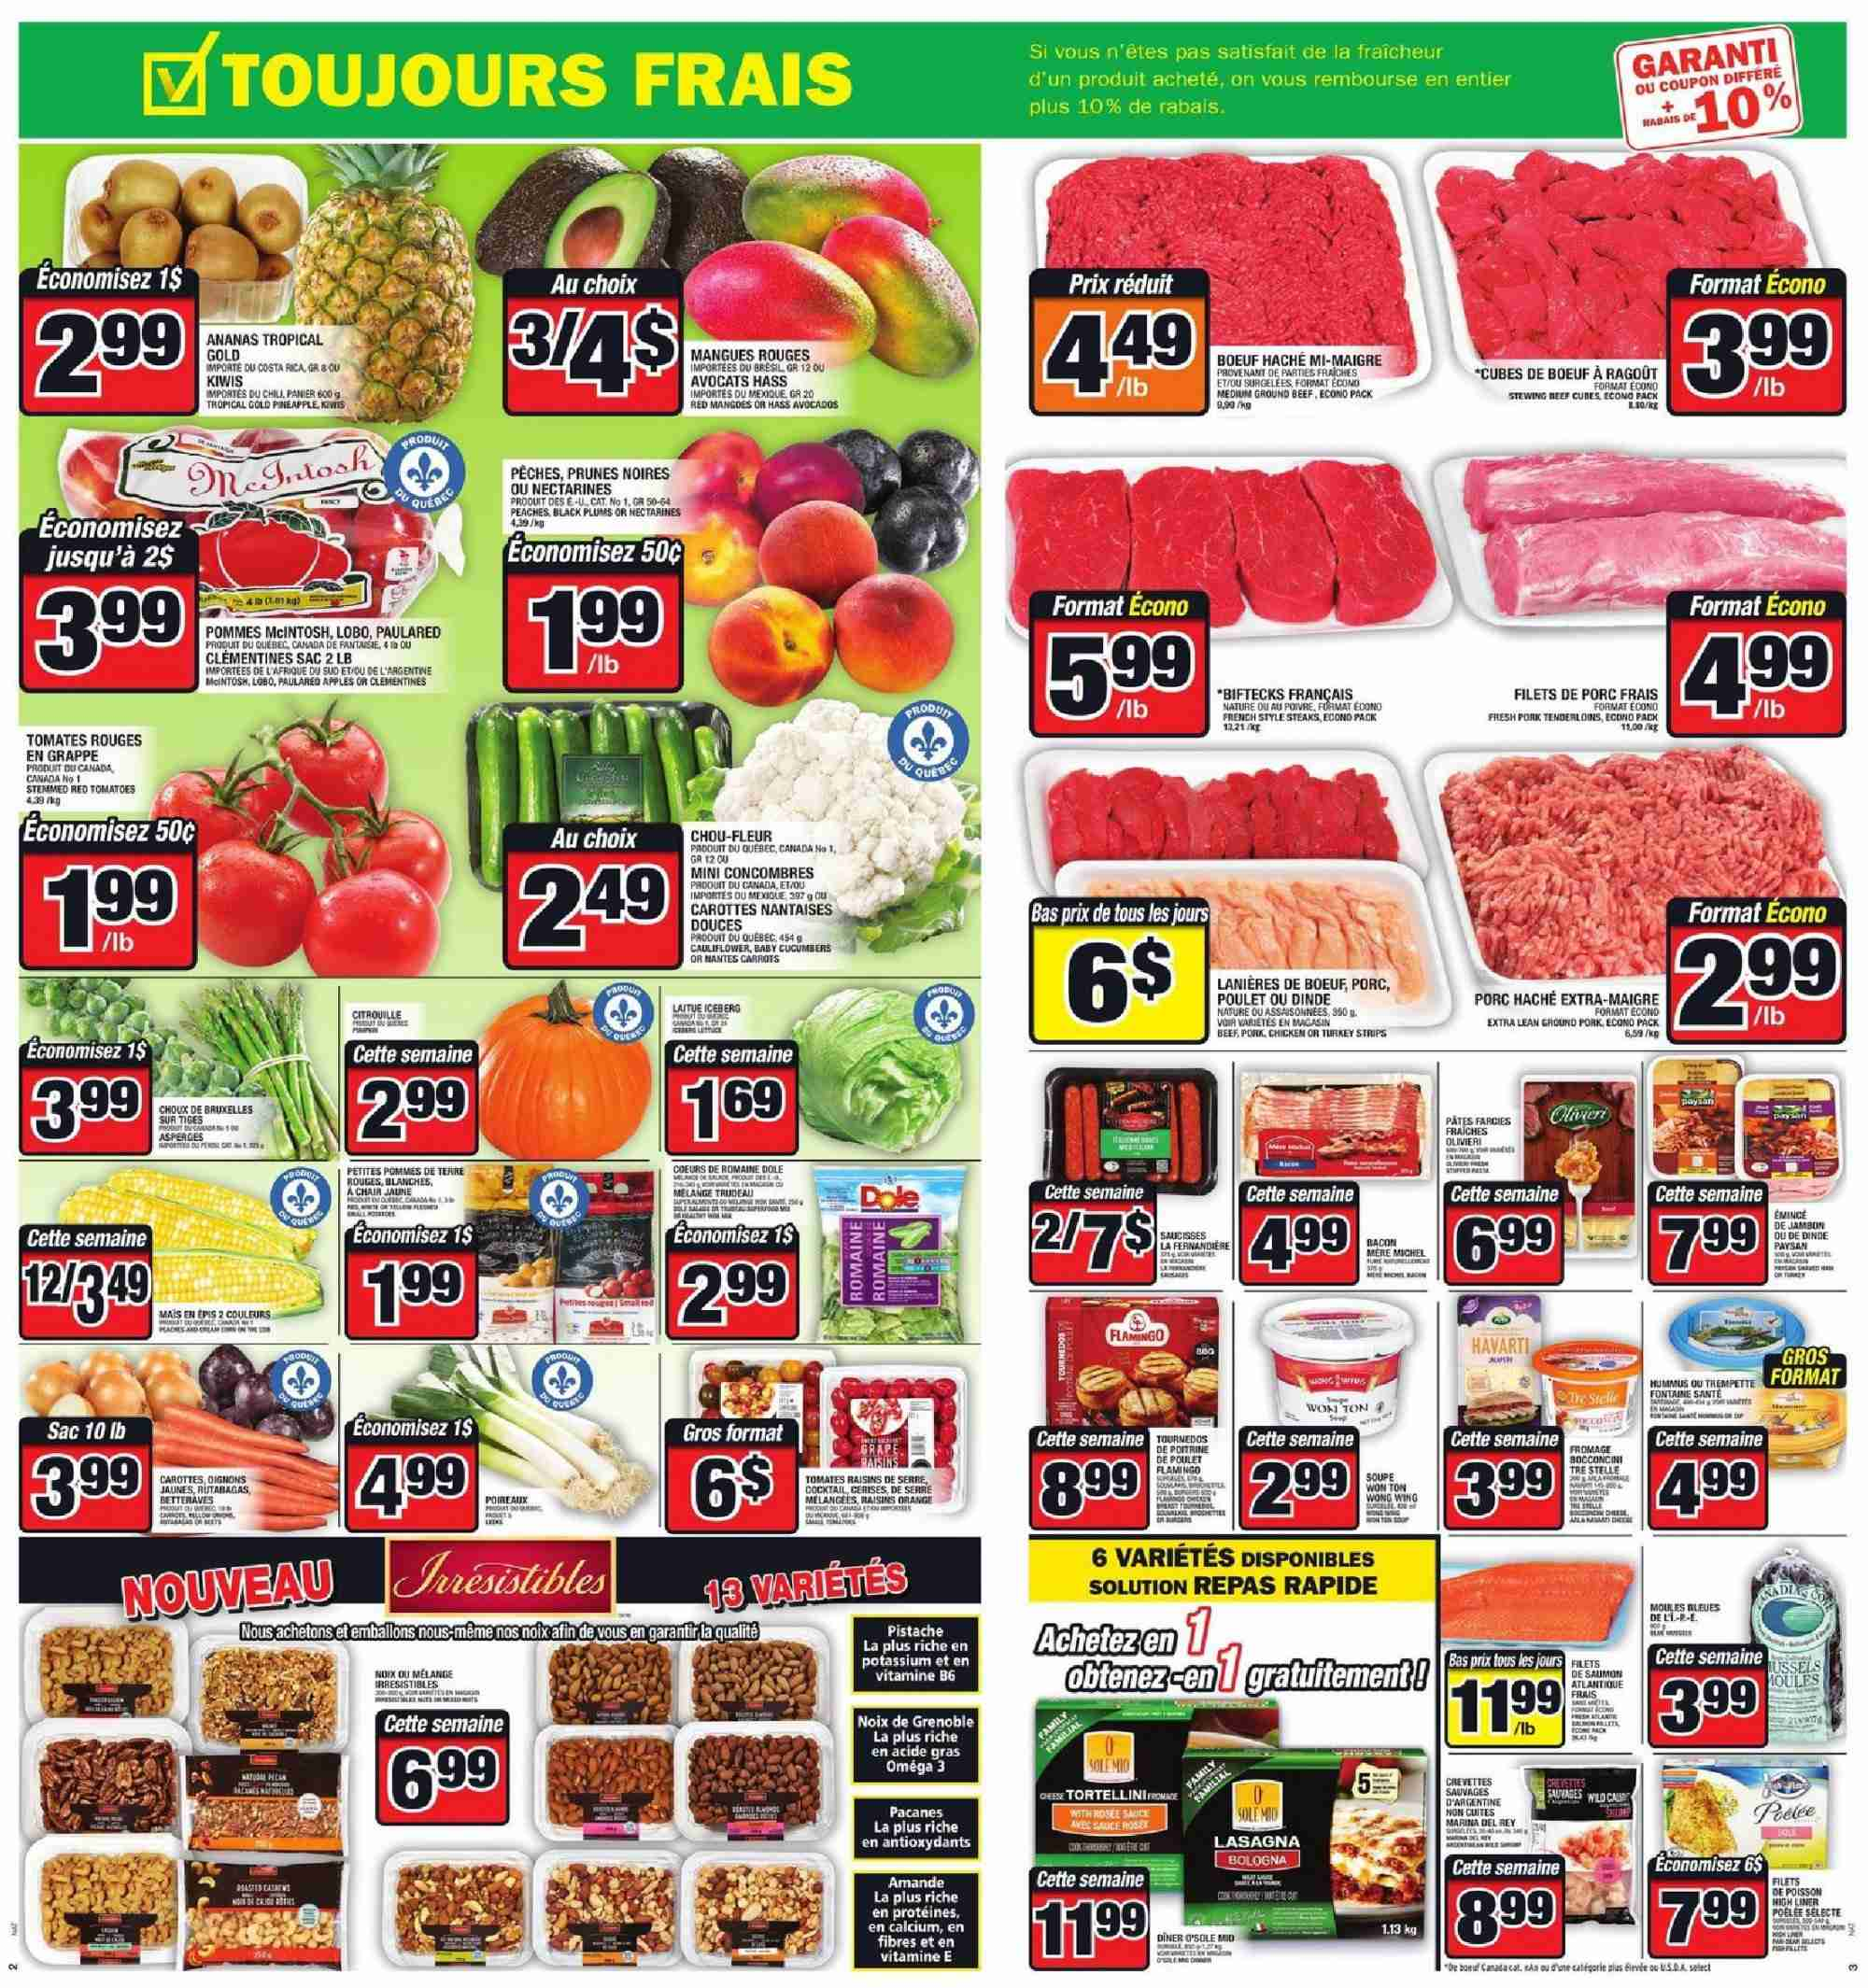 Super C Flyer - September 20, 2018 - September 26, 2018 - Sales products - apples, avocado, beef meat, carrots, cauliflower, clémentines, cucumbers, ground beef, mango, nectarines, raisins, tomatoes, chair, pineapple, plums, pork meat, prunes, chicken, omo, tomates, poulet, pommes, porc, ananas, bœuf, carotte, prune, mcintosh, nectarine, noix, panier, sac, pêche. Page 2.